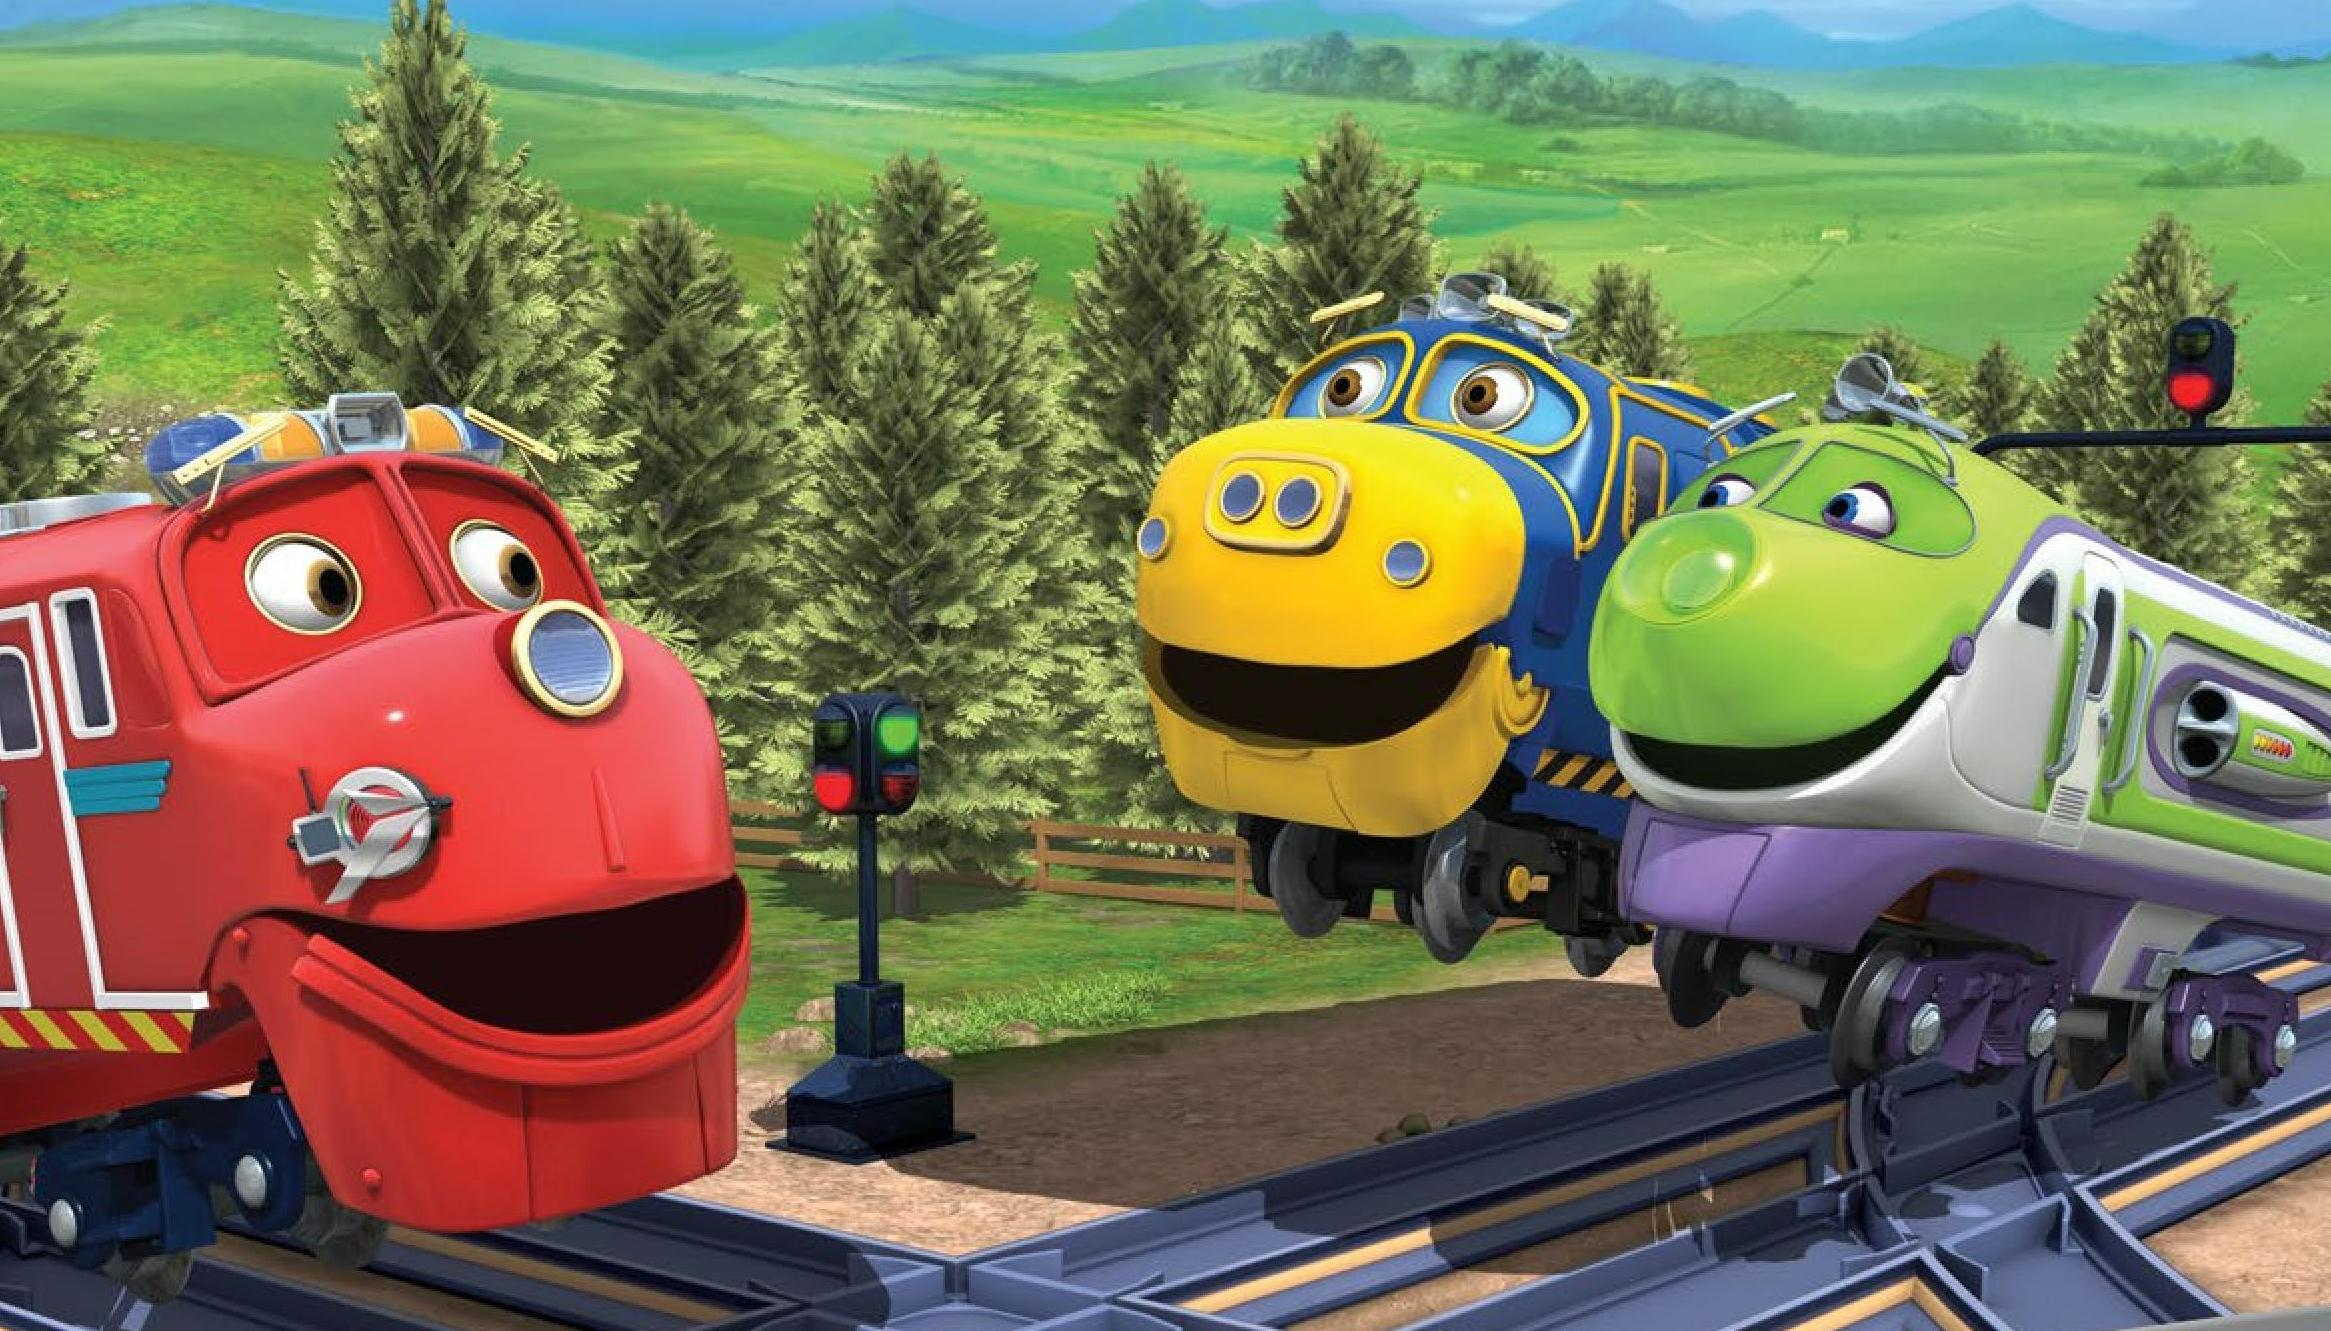 CHUGGINGTON: A Traintastic Adventure!